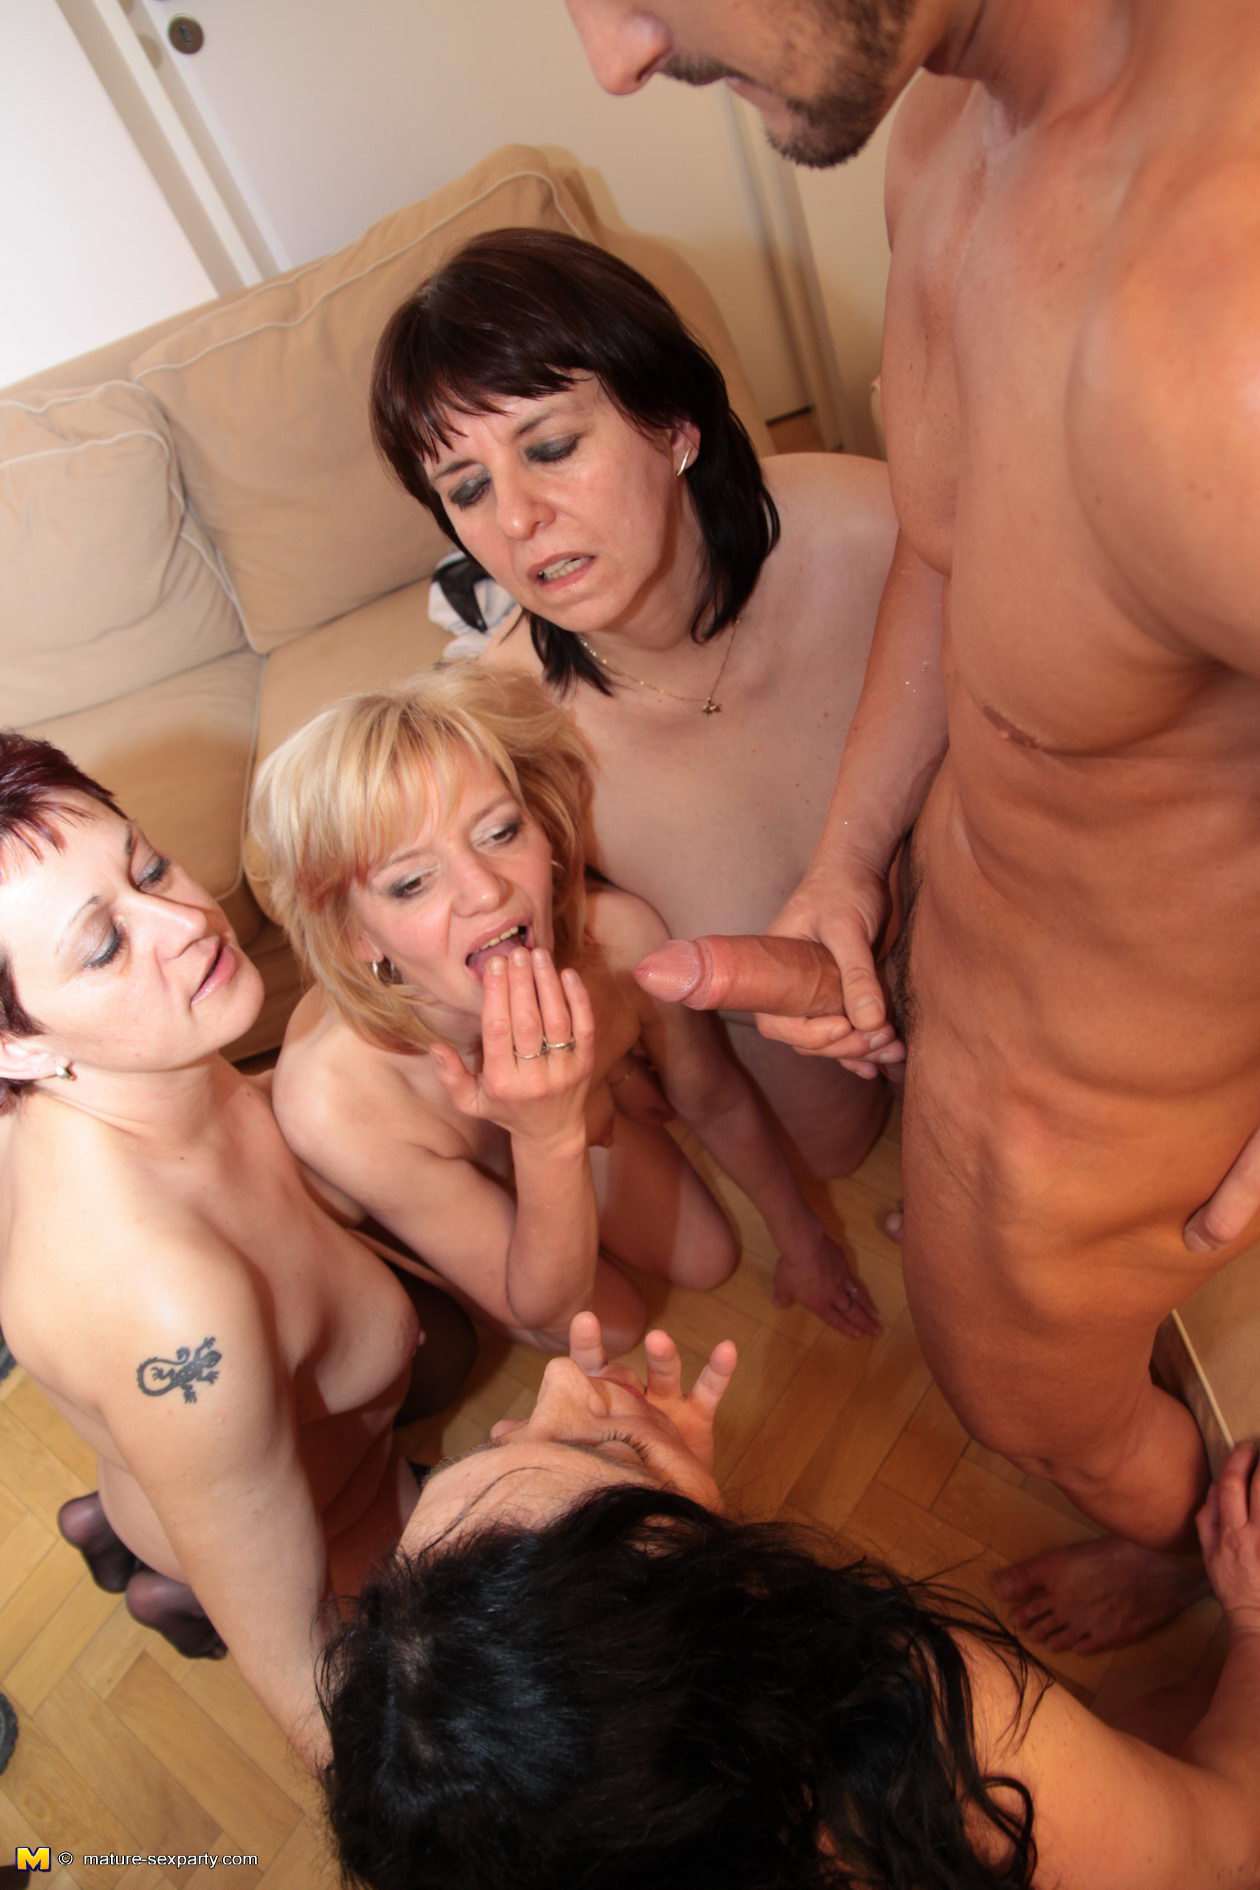 Threesome with wifes friend